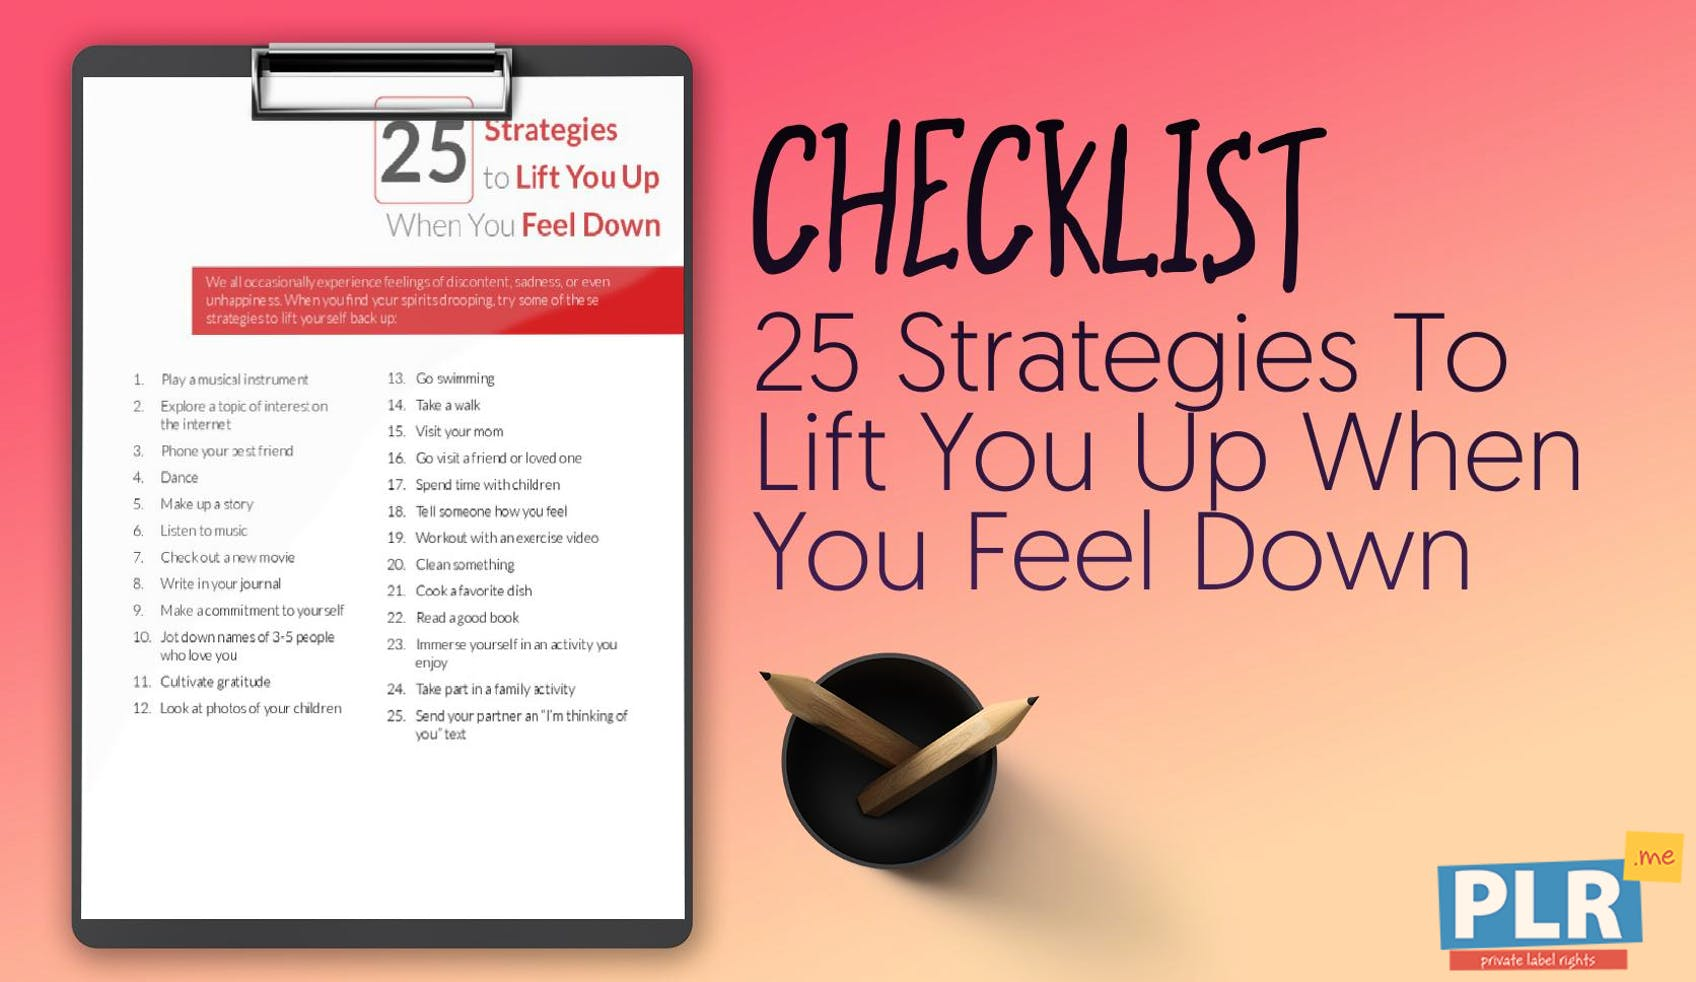 25 Strategies To Lift You Up When You Feel Down